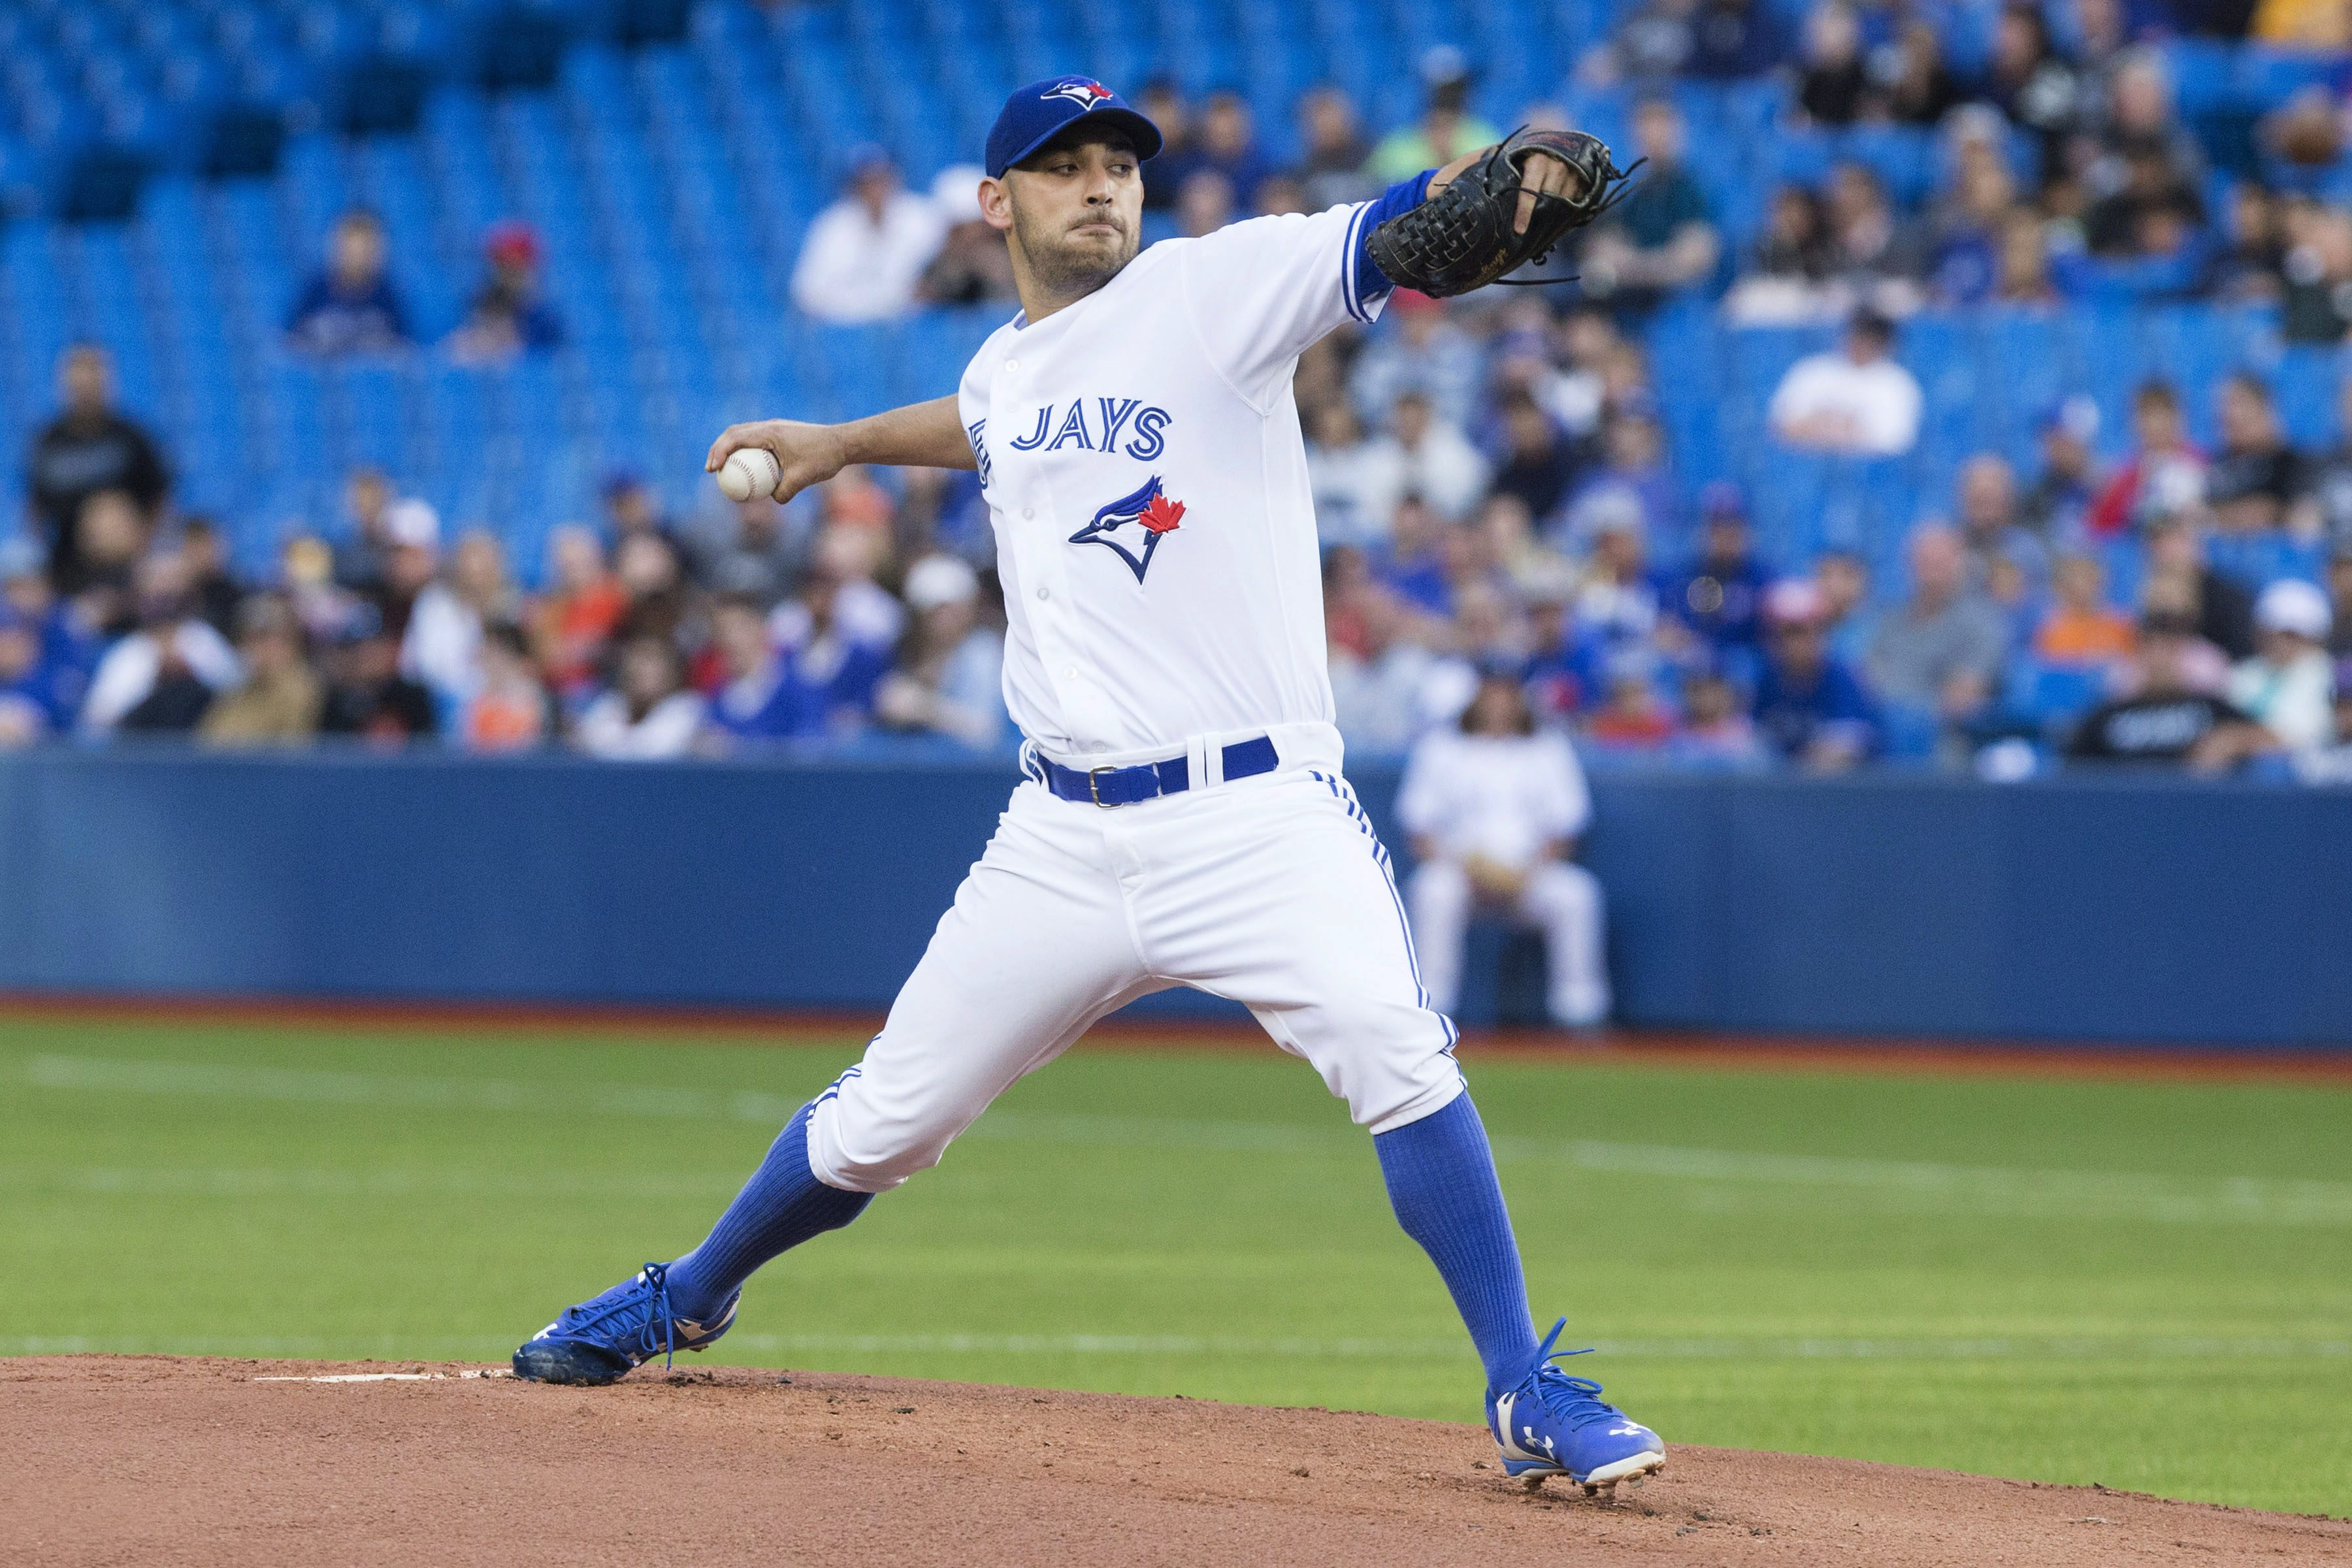 Toronto Blue Jays starting pitcher Marco Estrada throws during first-inning American League baseball game action against the Baltimore Orioles in Toronto, Friday June 19 , 2015. (Chris Young/The Canadian Press via AP) MANDATORY CREDIT